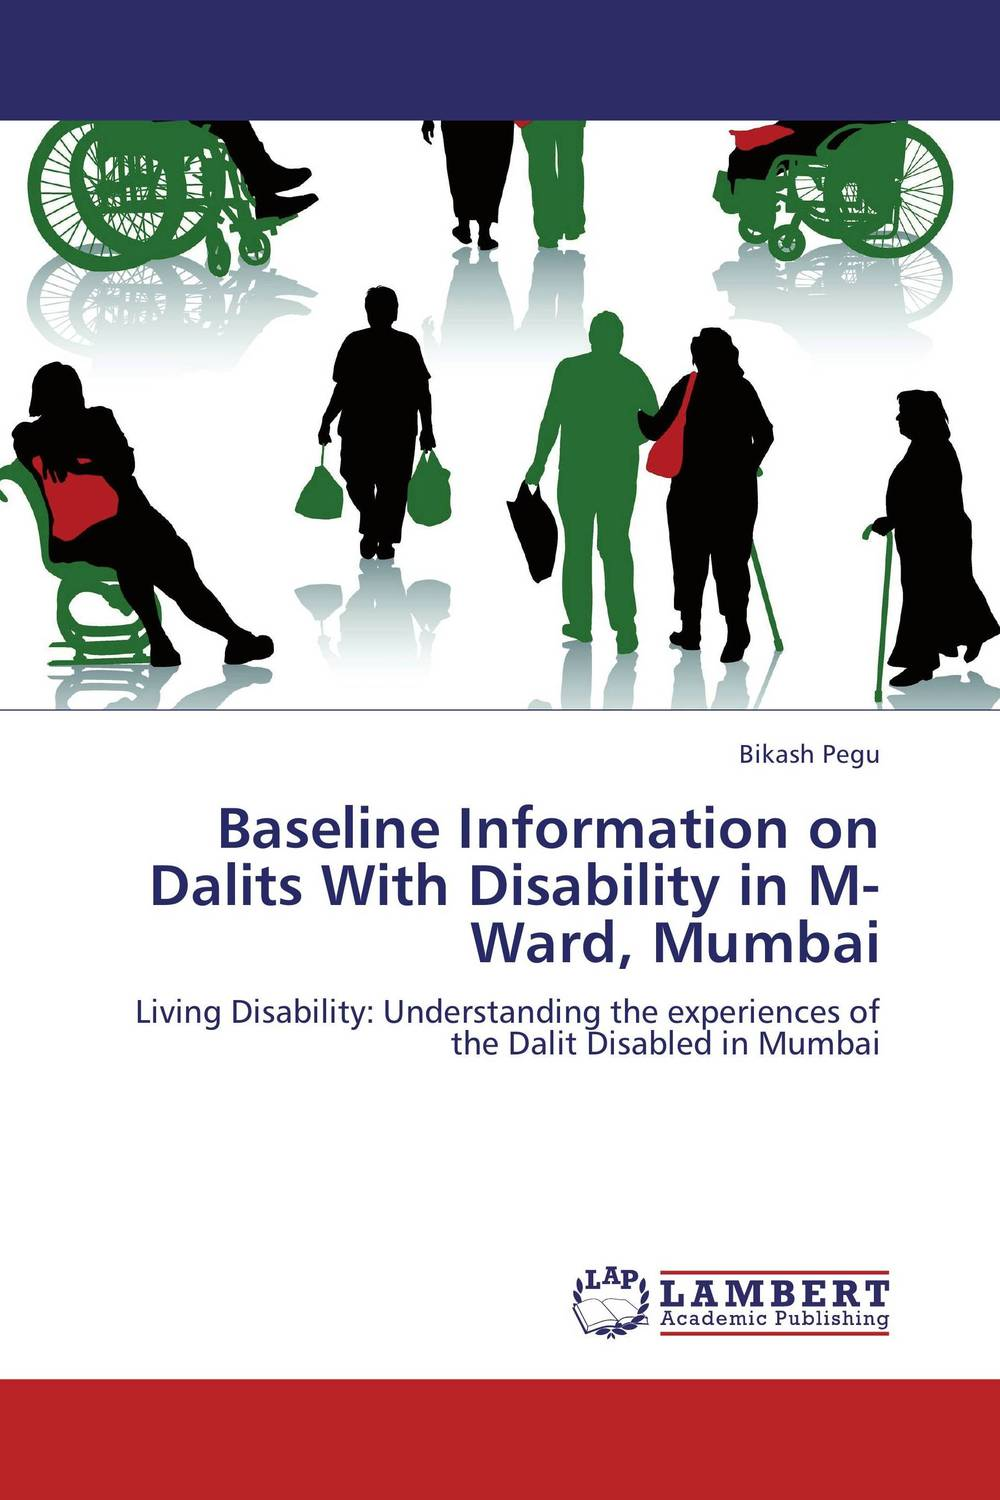 Baseline Information on Dalits With Disability in M-Ward, Mumbai  essam m shaalan sayed ward and samy m ghania assessment of electric field exposure inside hv substations